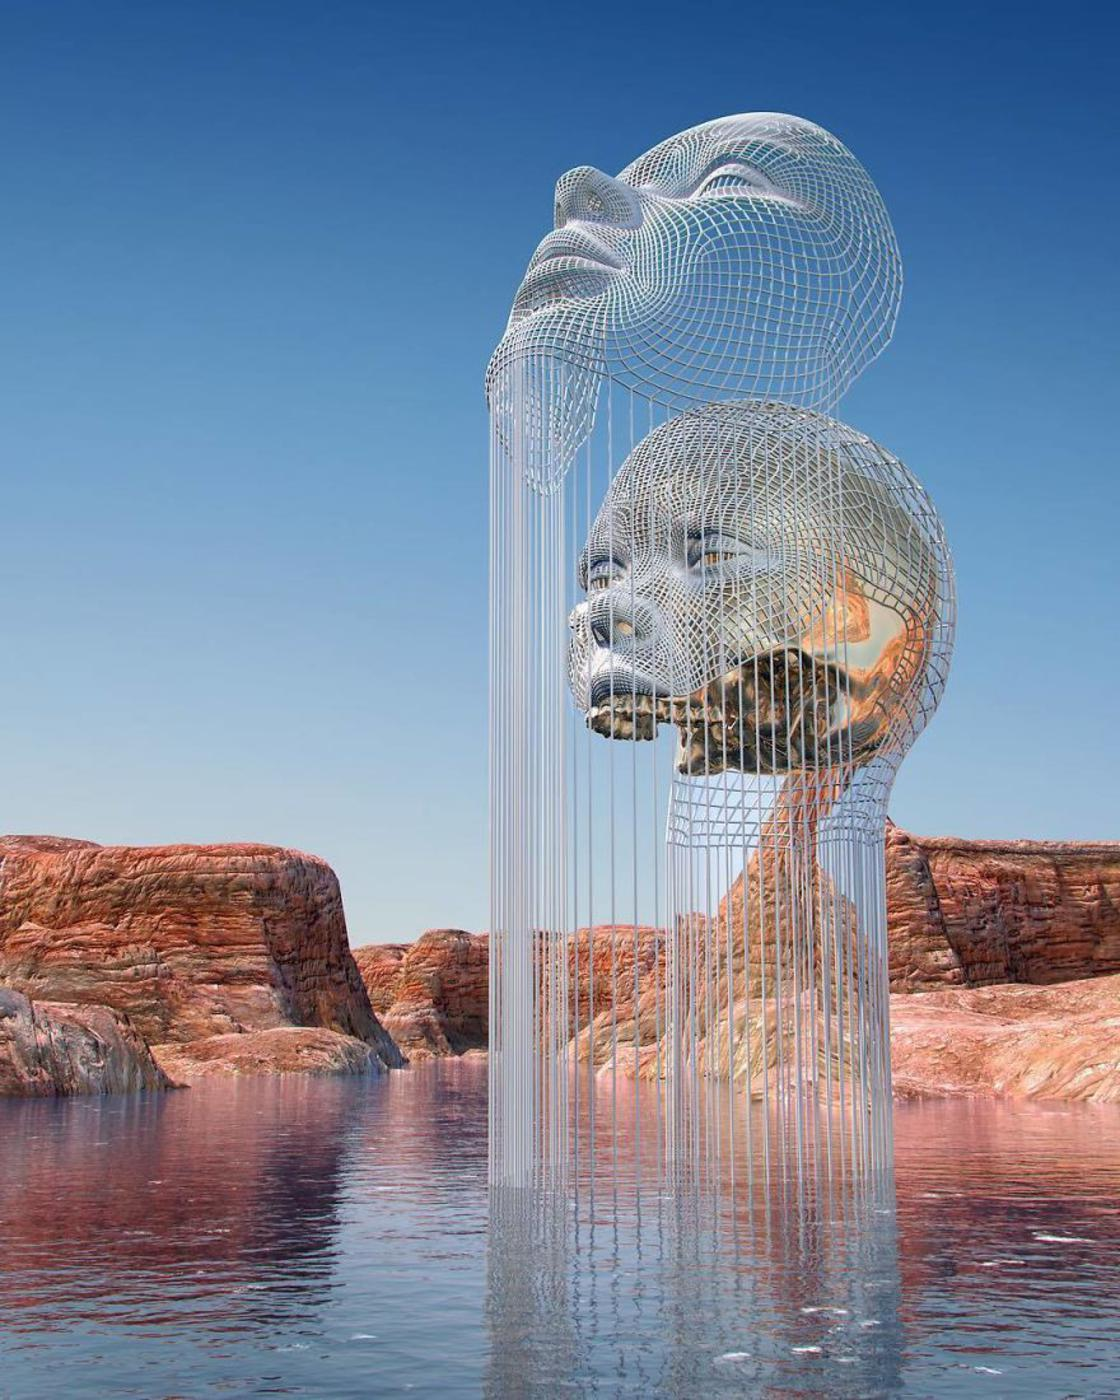 Mirage – The amazing virtual sculptures by Chad Knight